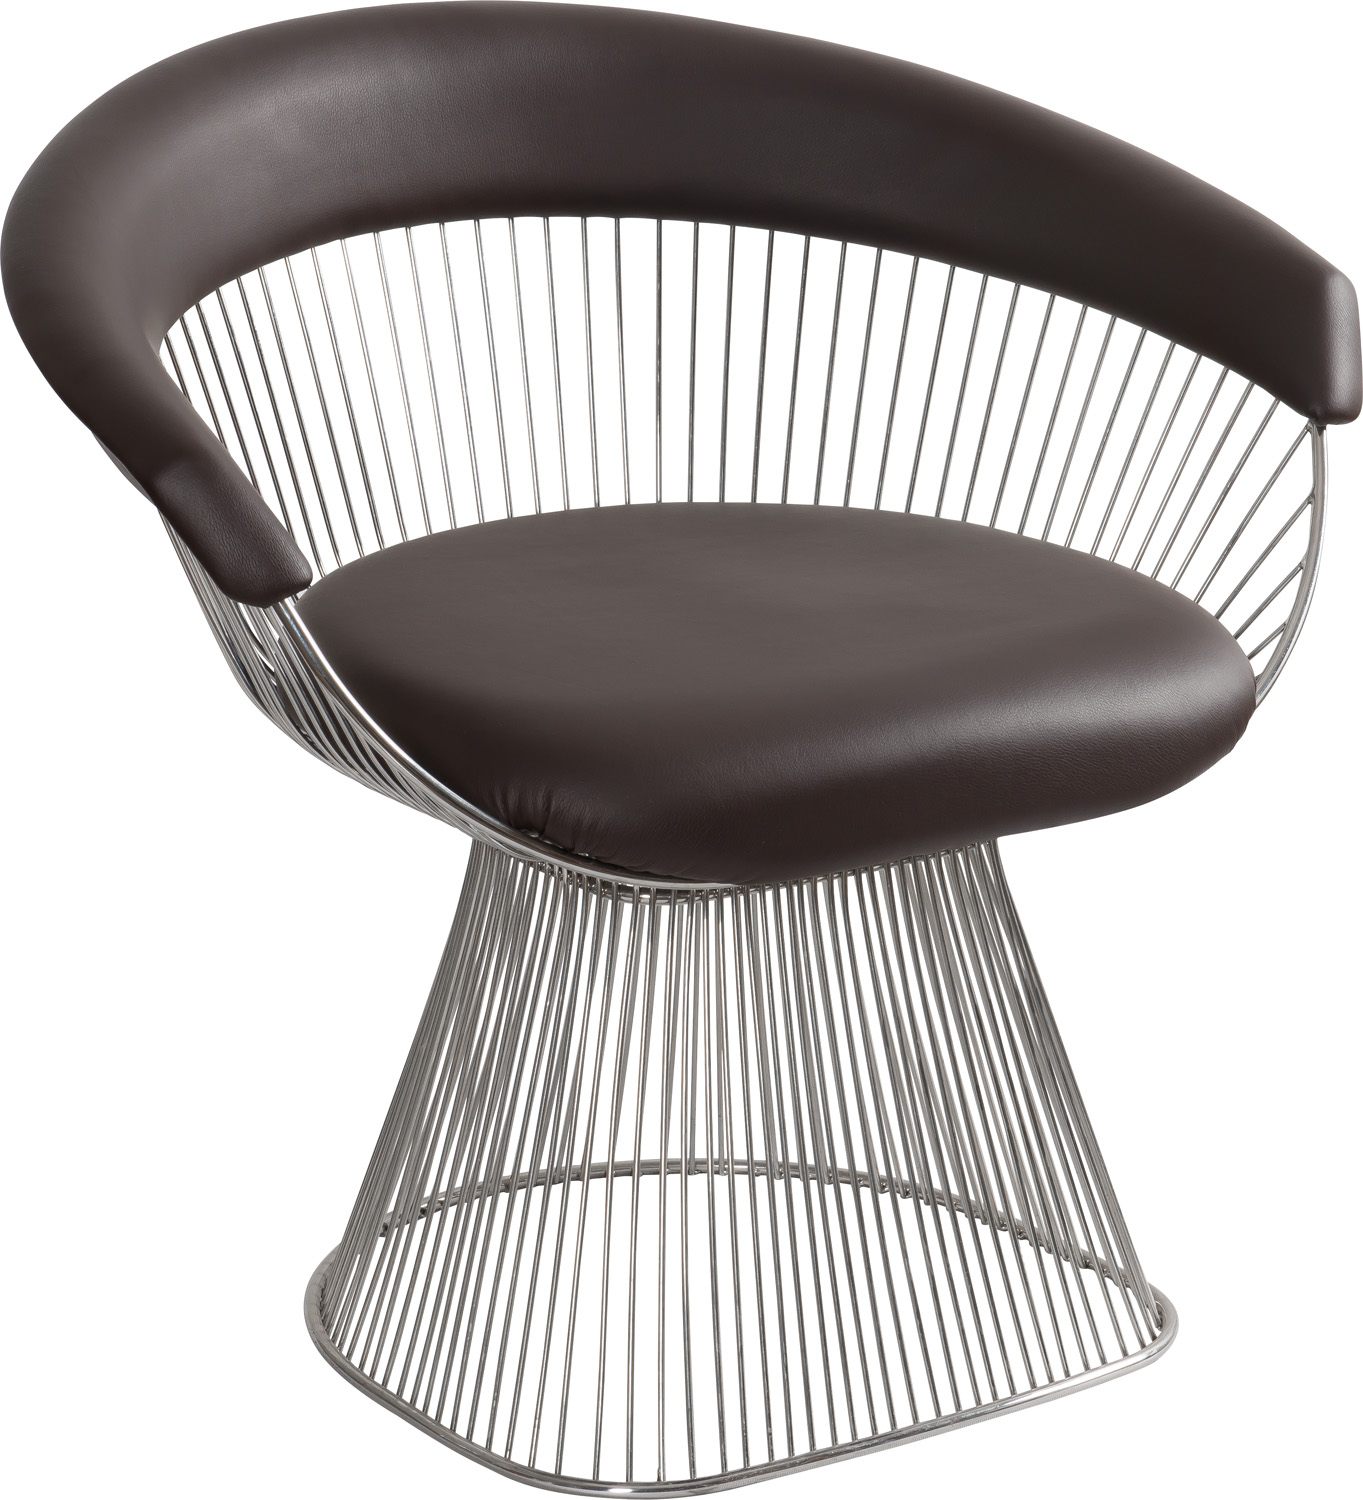 JSWMC-10 Stainless Steel Wired Leisure Chair With Cushion